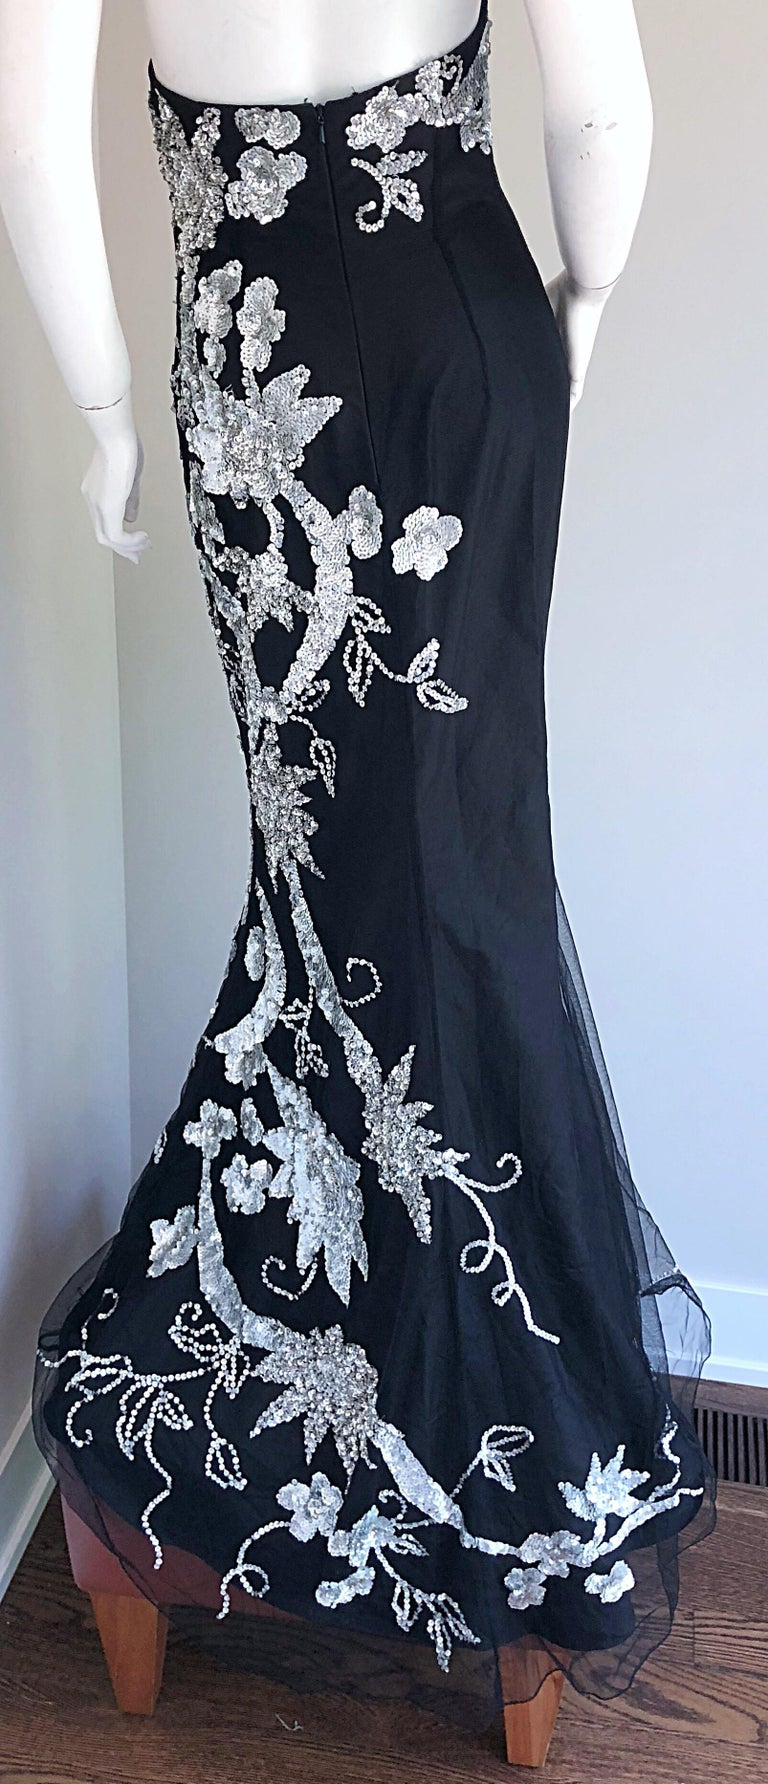 Gorgeous 1990s Black and Silver Sequined Dramatic Strapless Vintage 90s Gown  2